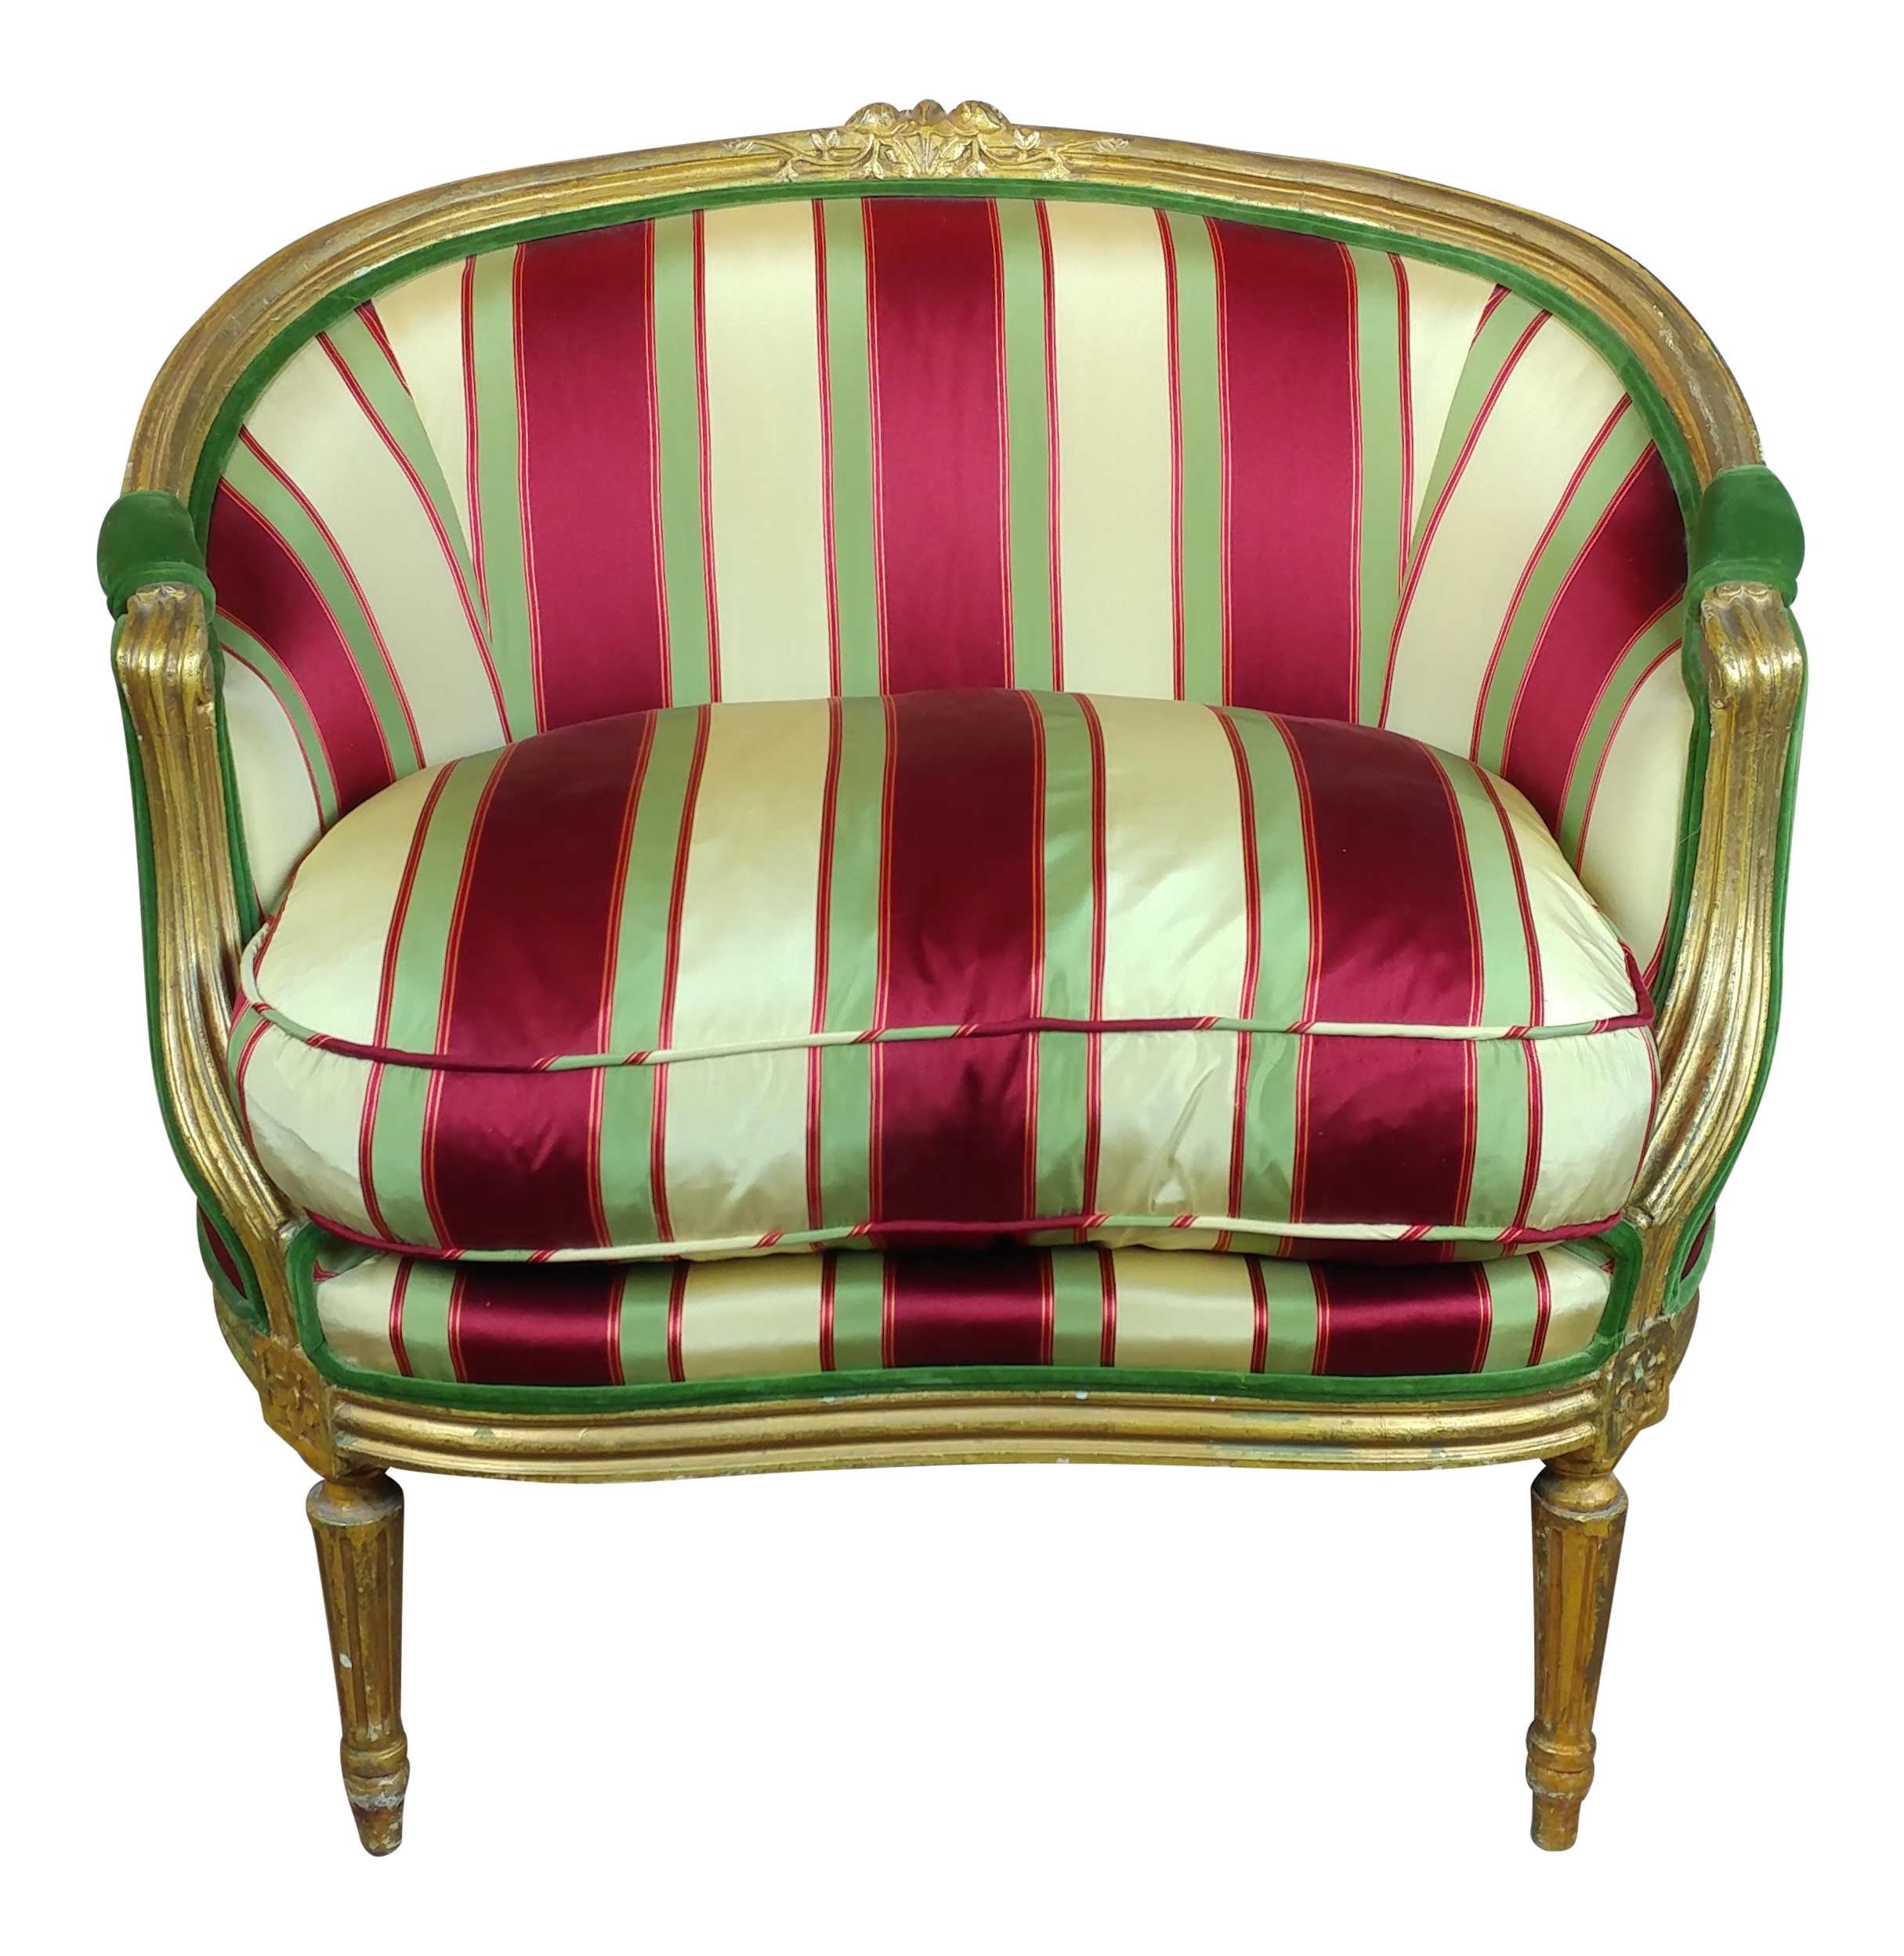 Louis XV Bergere Chair W/Red U0026 Yellow Striped Upholstery   Image